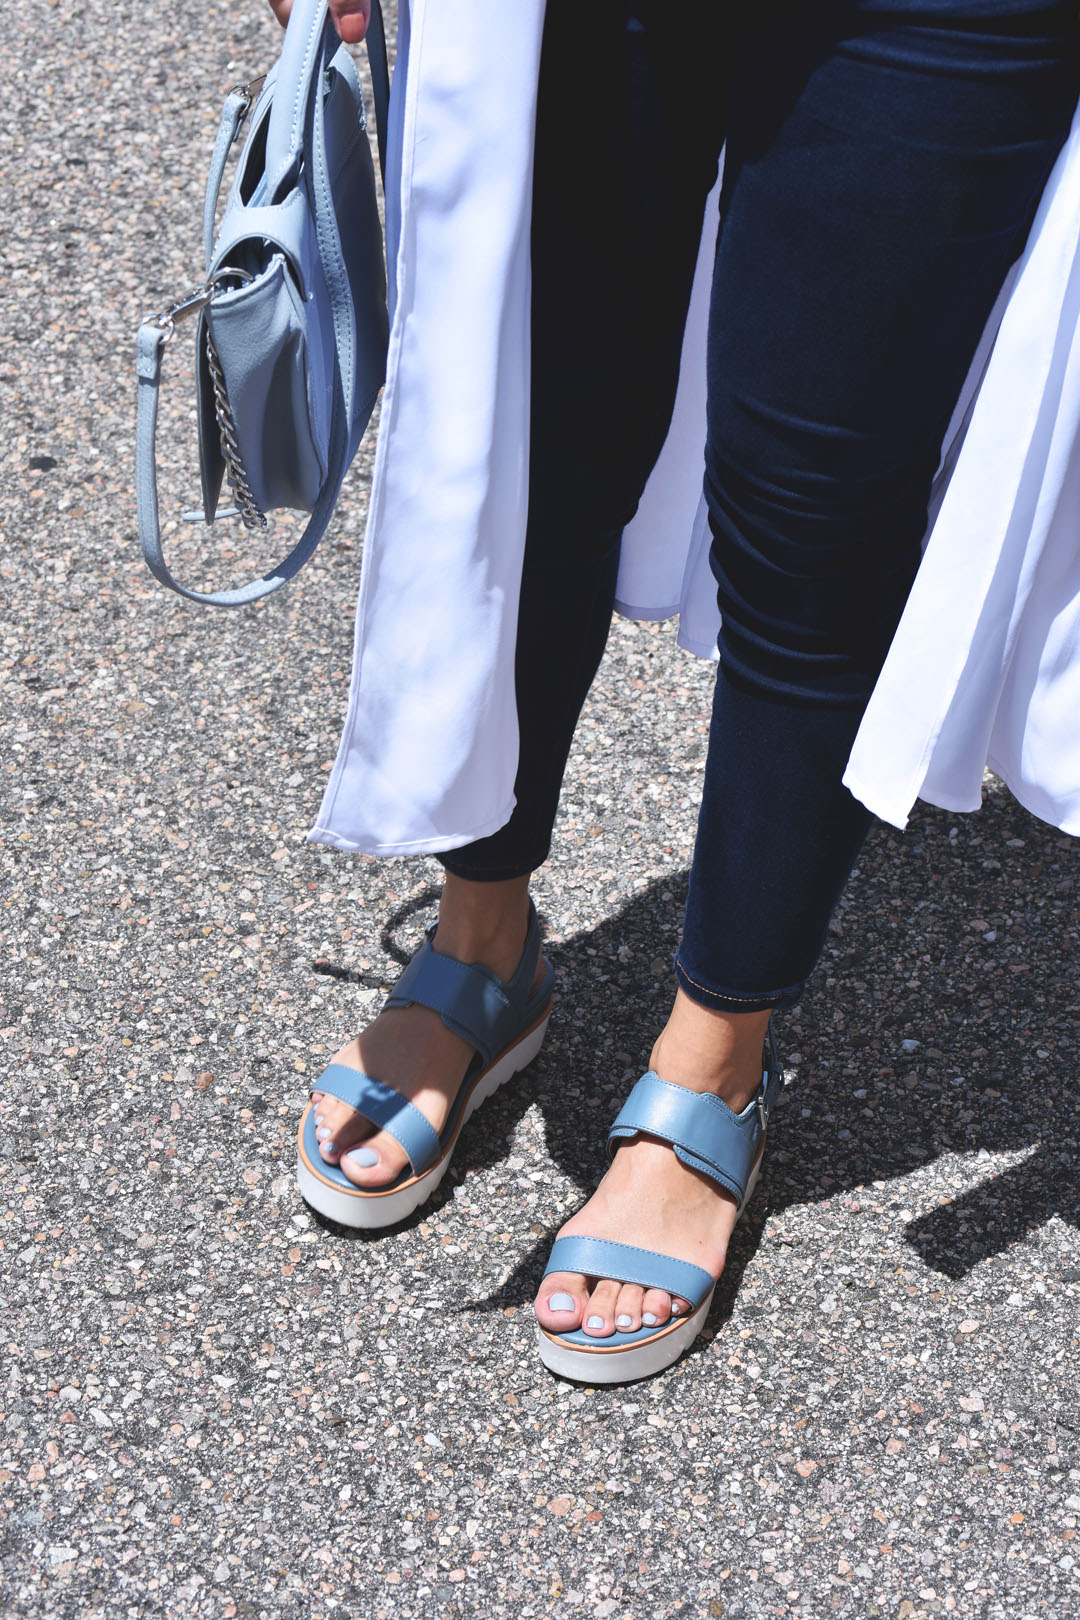 Skechers blue sandals and American Eagle skinny cropped jeggins